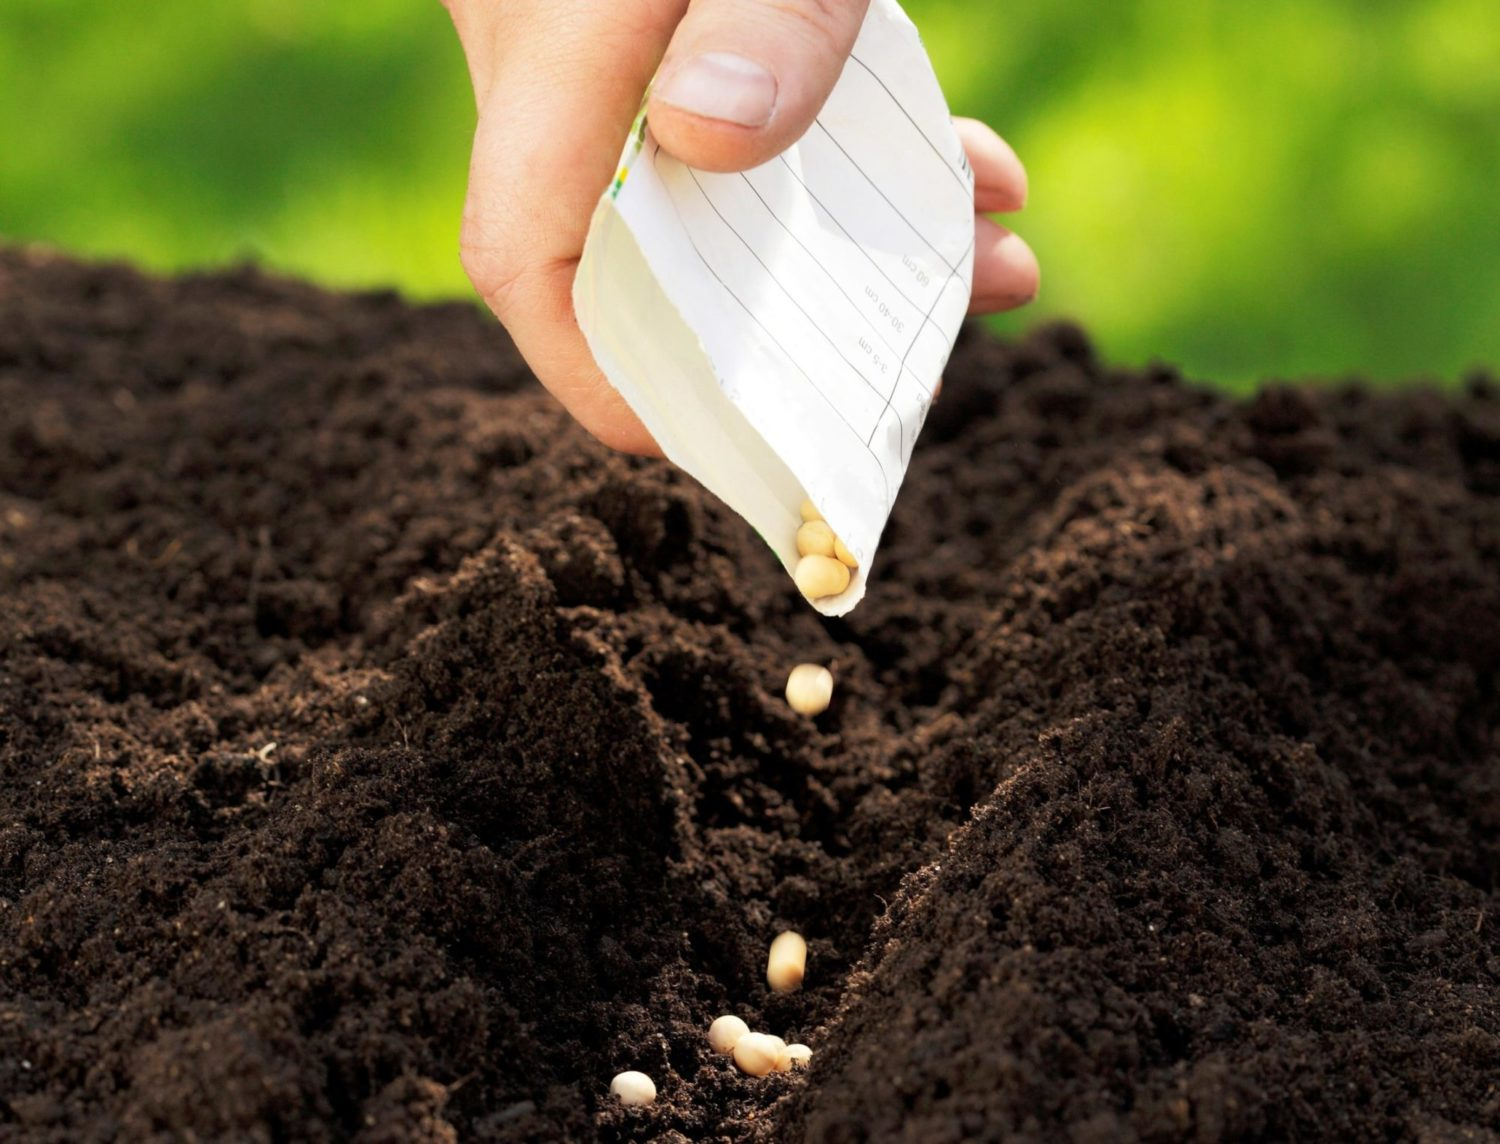 An example of planting seeds in a furrow.